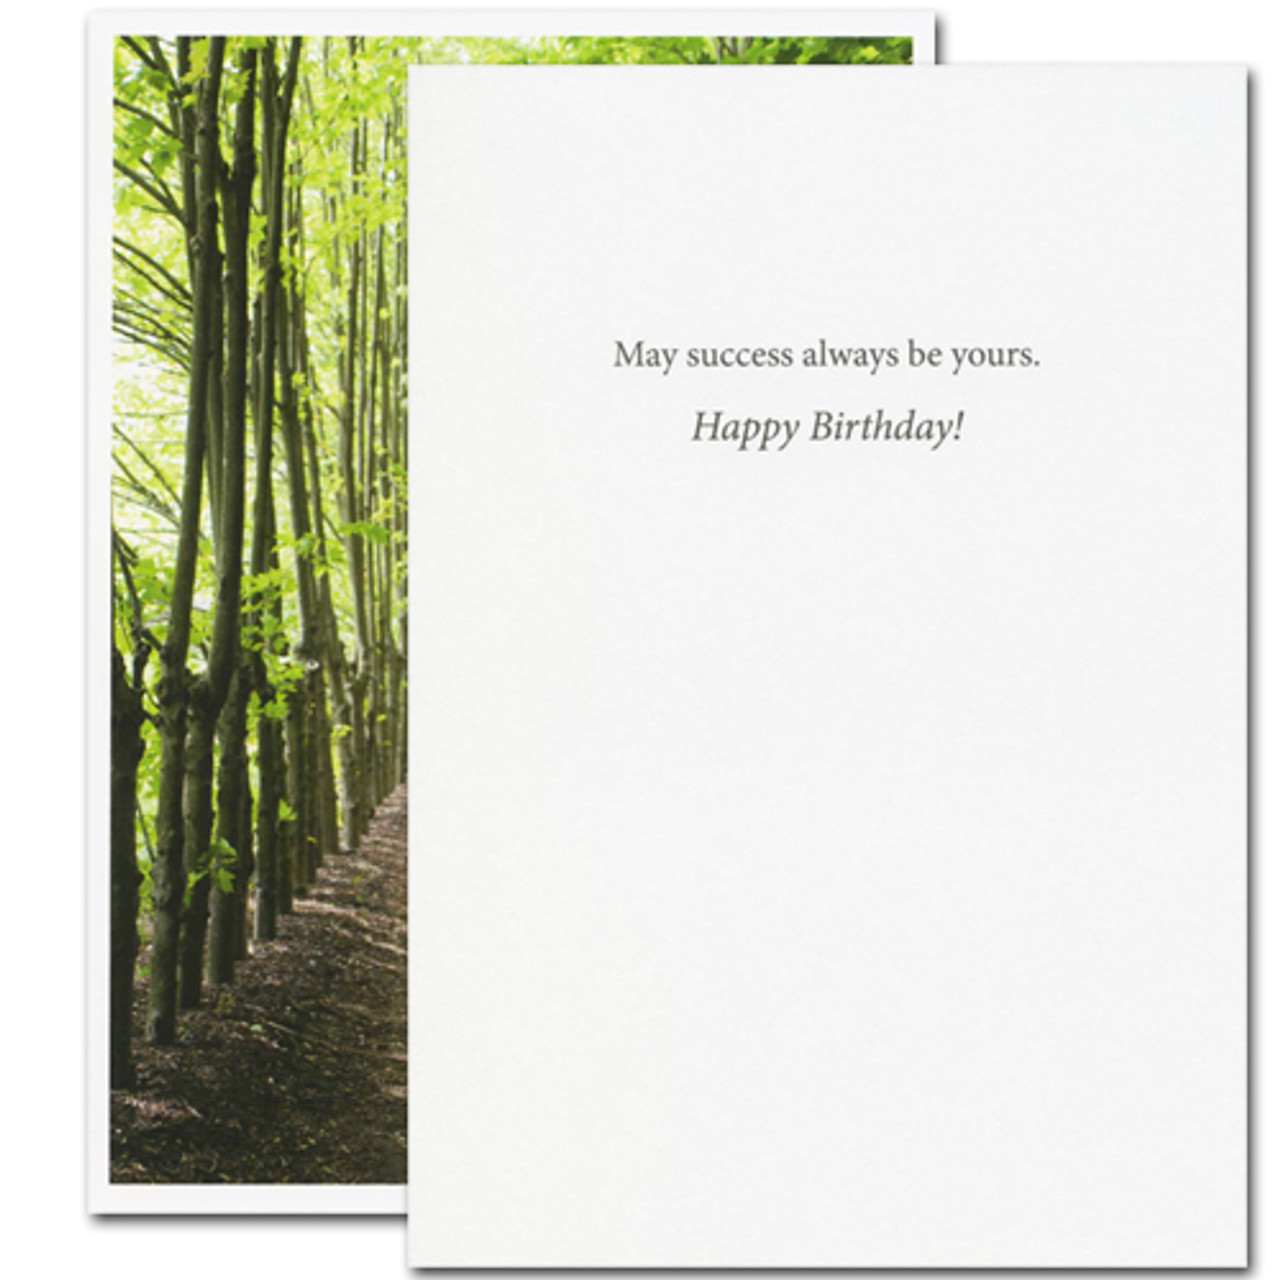 "Christopher Morley quotation card Inside message ""may success always be yours. Happy Birthday"""